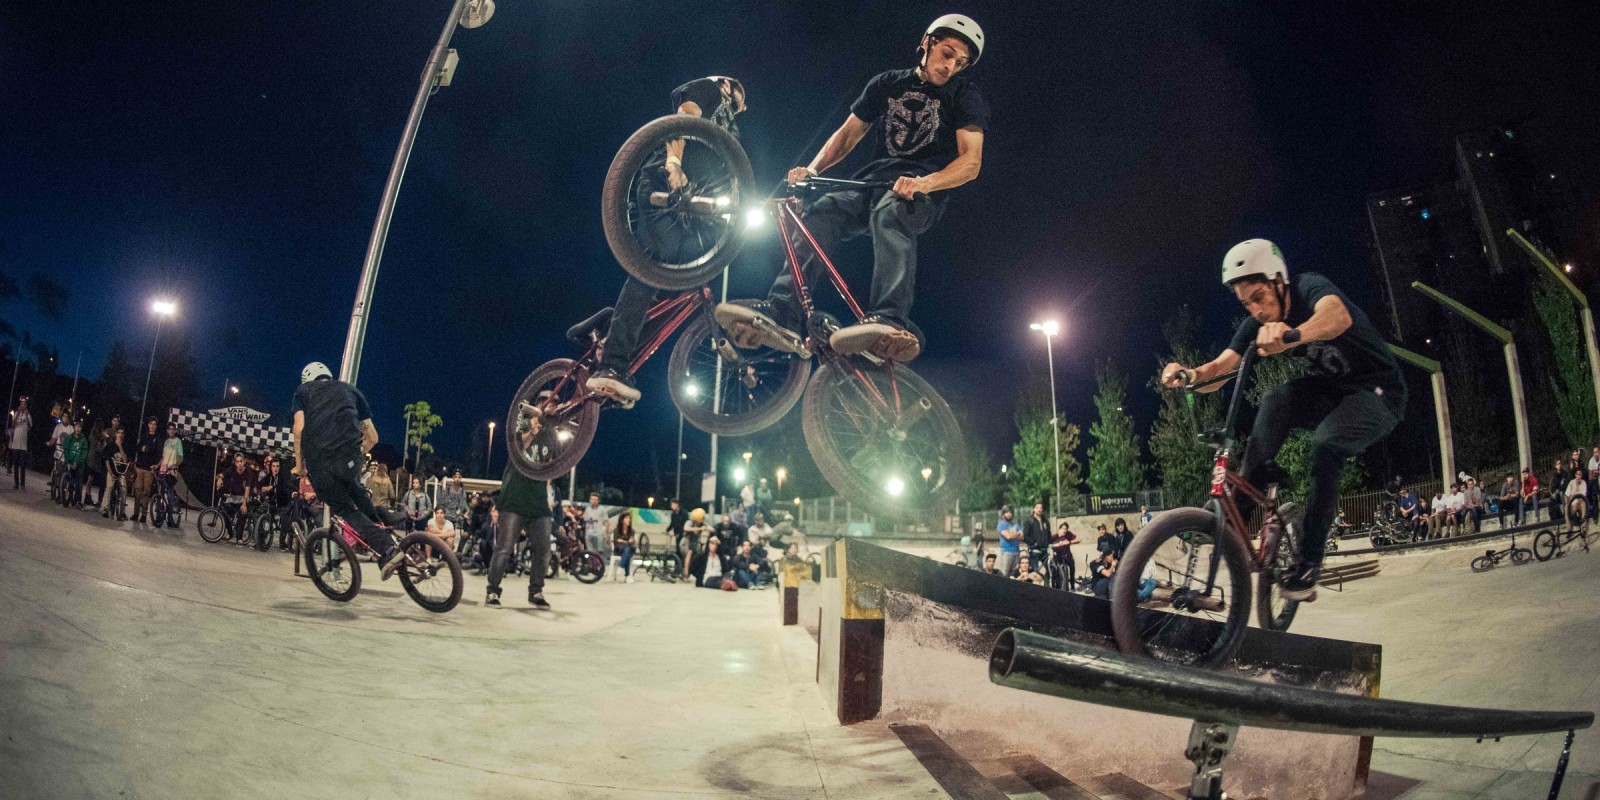 BMX competition at Malaga, Spain.